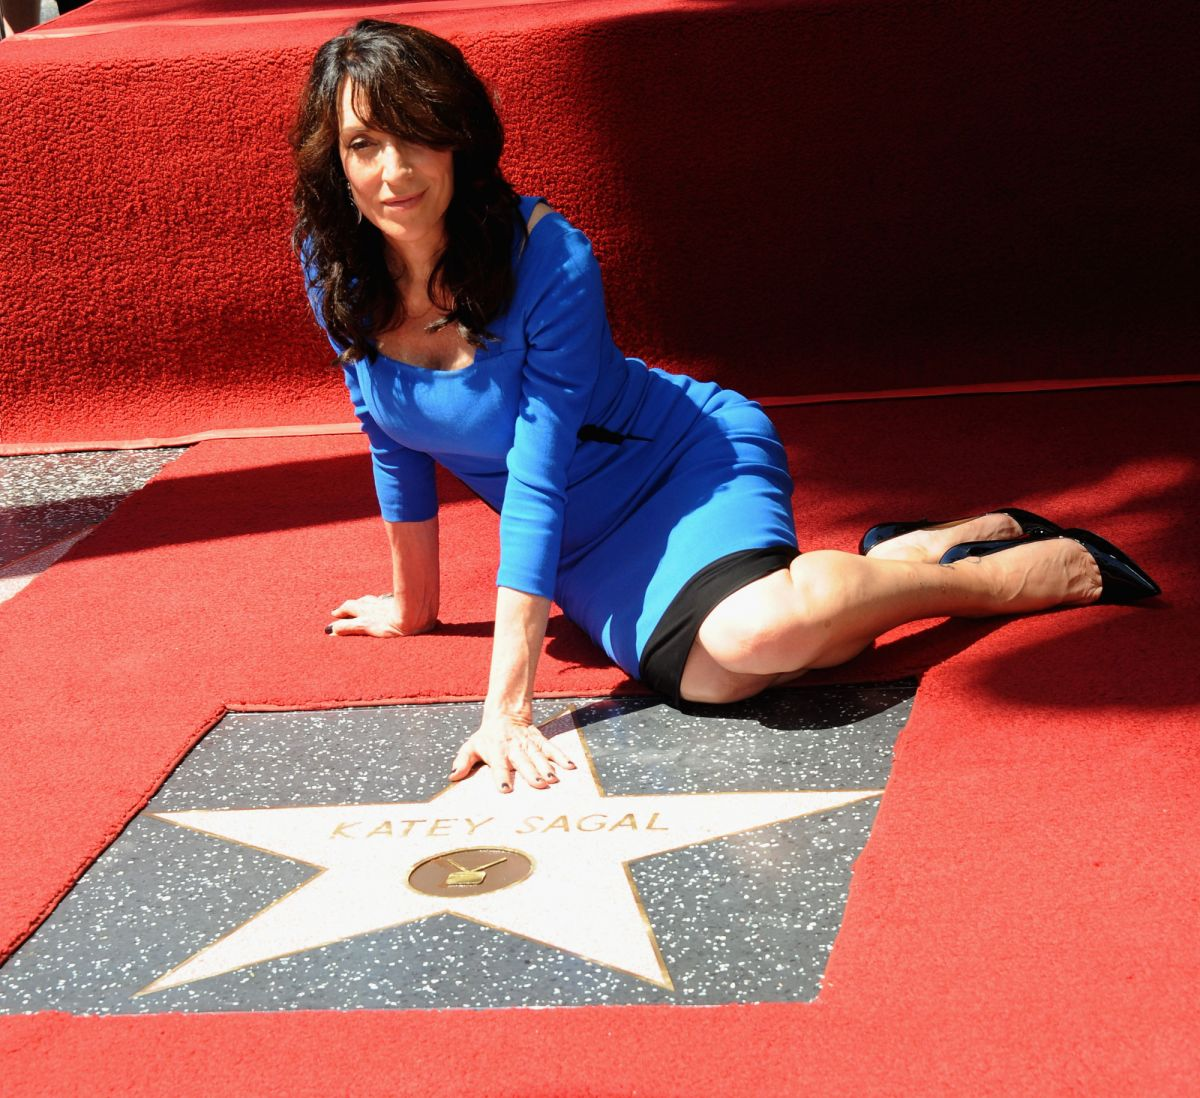 katey sagal the forest rangers greensleeves lyricskatey sagal leela, katey sagal & the forest rangers, katey sagal big bang theory, katey sagal strange fruit, katey sagal greensleeves lyrics, katey sagal to sir with love, katey sagal 2016, katey sagal forever young, katey sagal ruby tuesday, katey sagal son, katey sagal filmography, katey sagal gallery, katey sagal song, katey sagal the forest rangers greensleeves lyrics, katey sagal miscarriage, katey sagal listal, katey sagal married, katey sagal tbbt, katey sagal craig ferguson, katey sagal tattoo